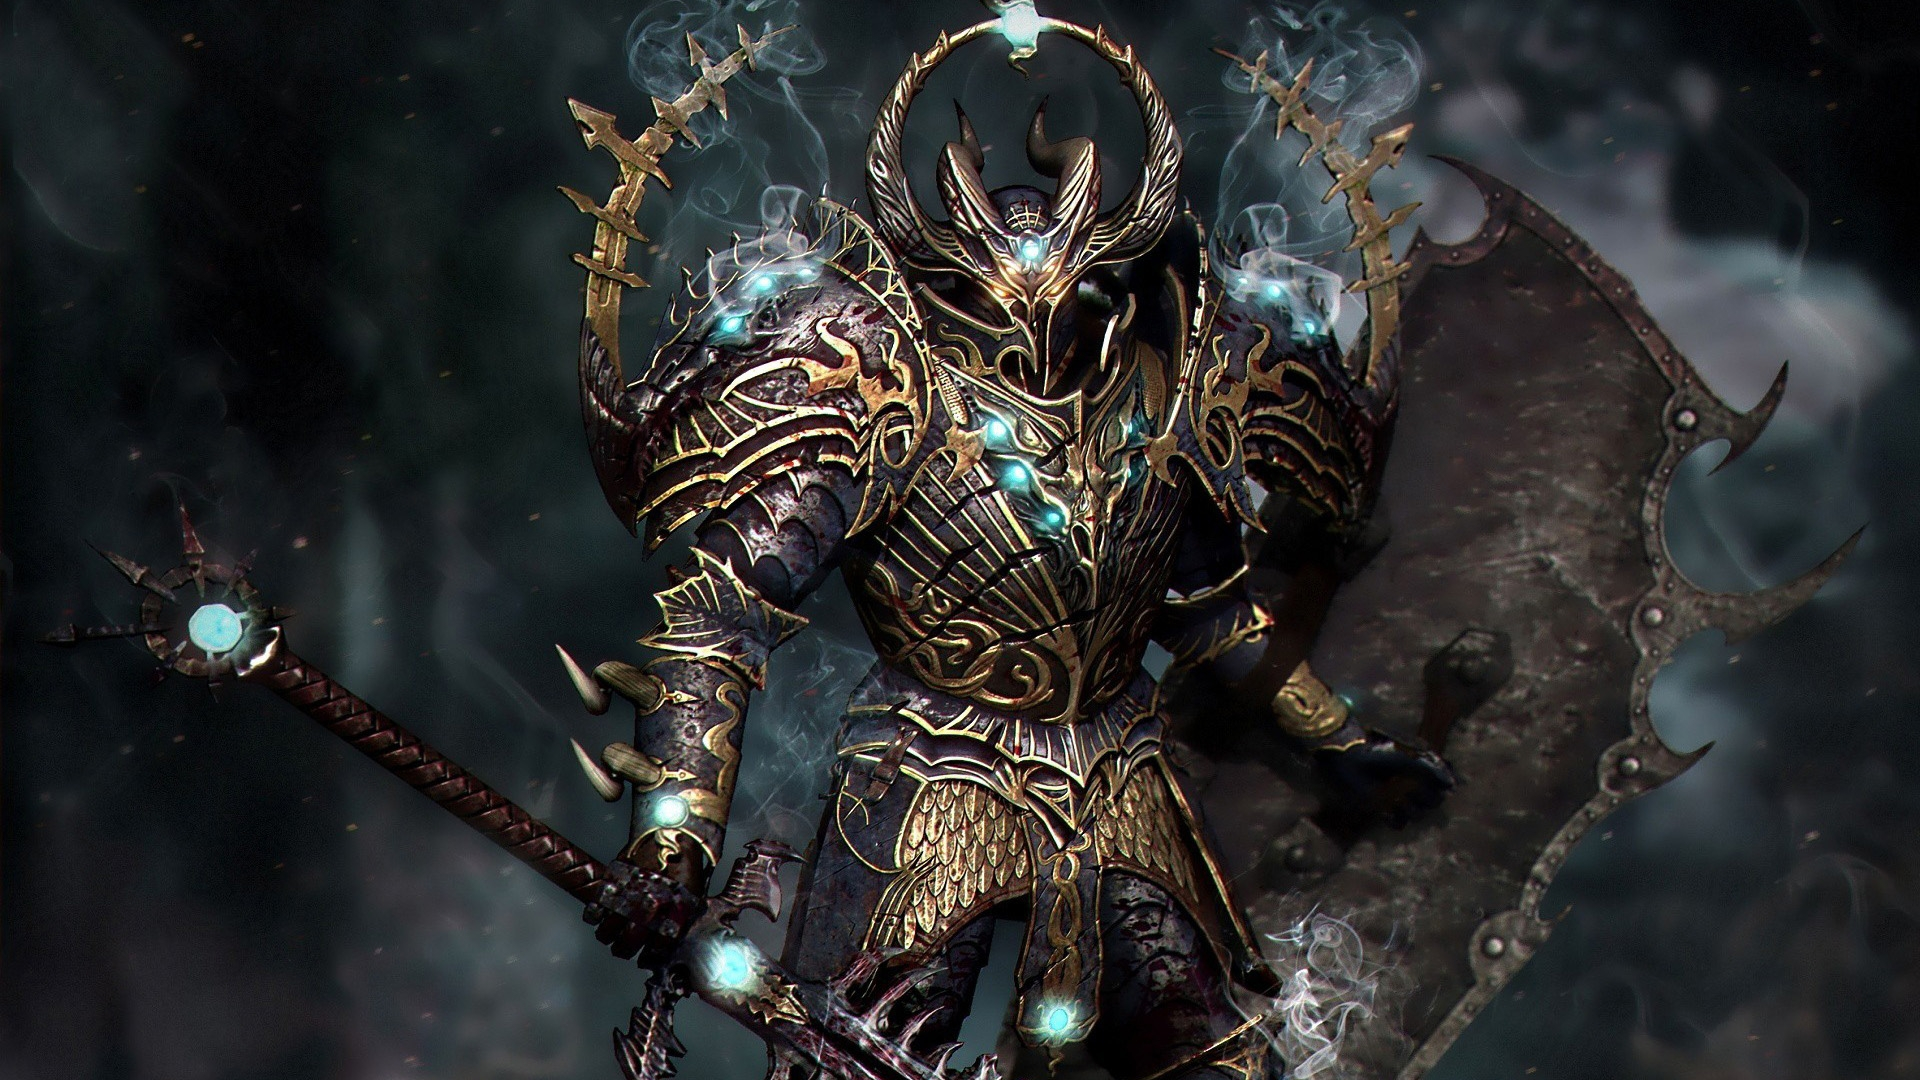 game wallpaper fullhd imagepages warior warhammer images chaos 1920x1080